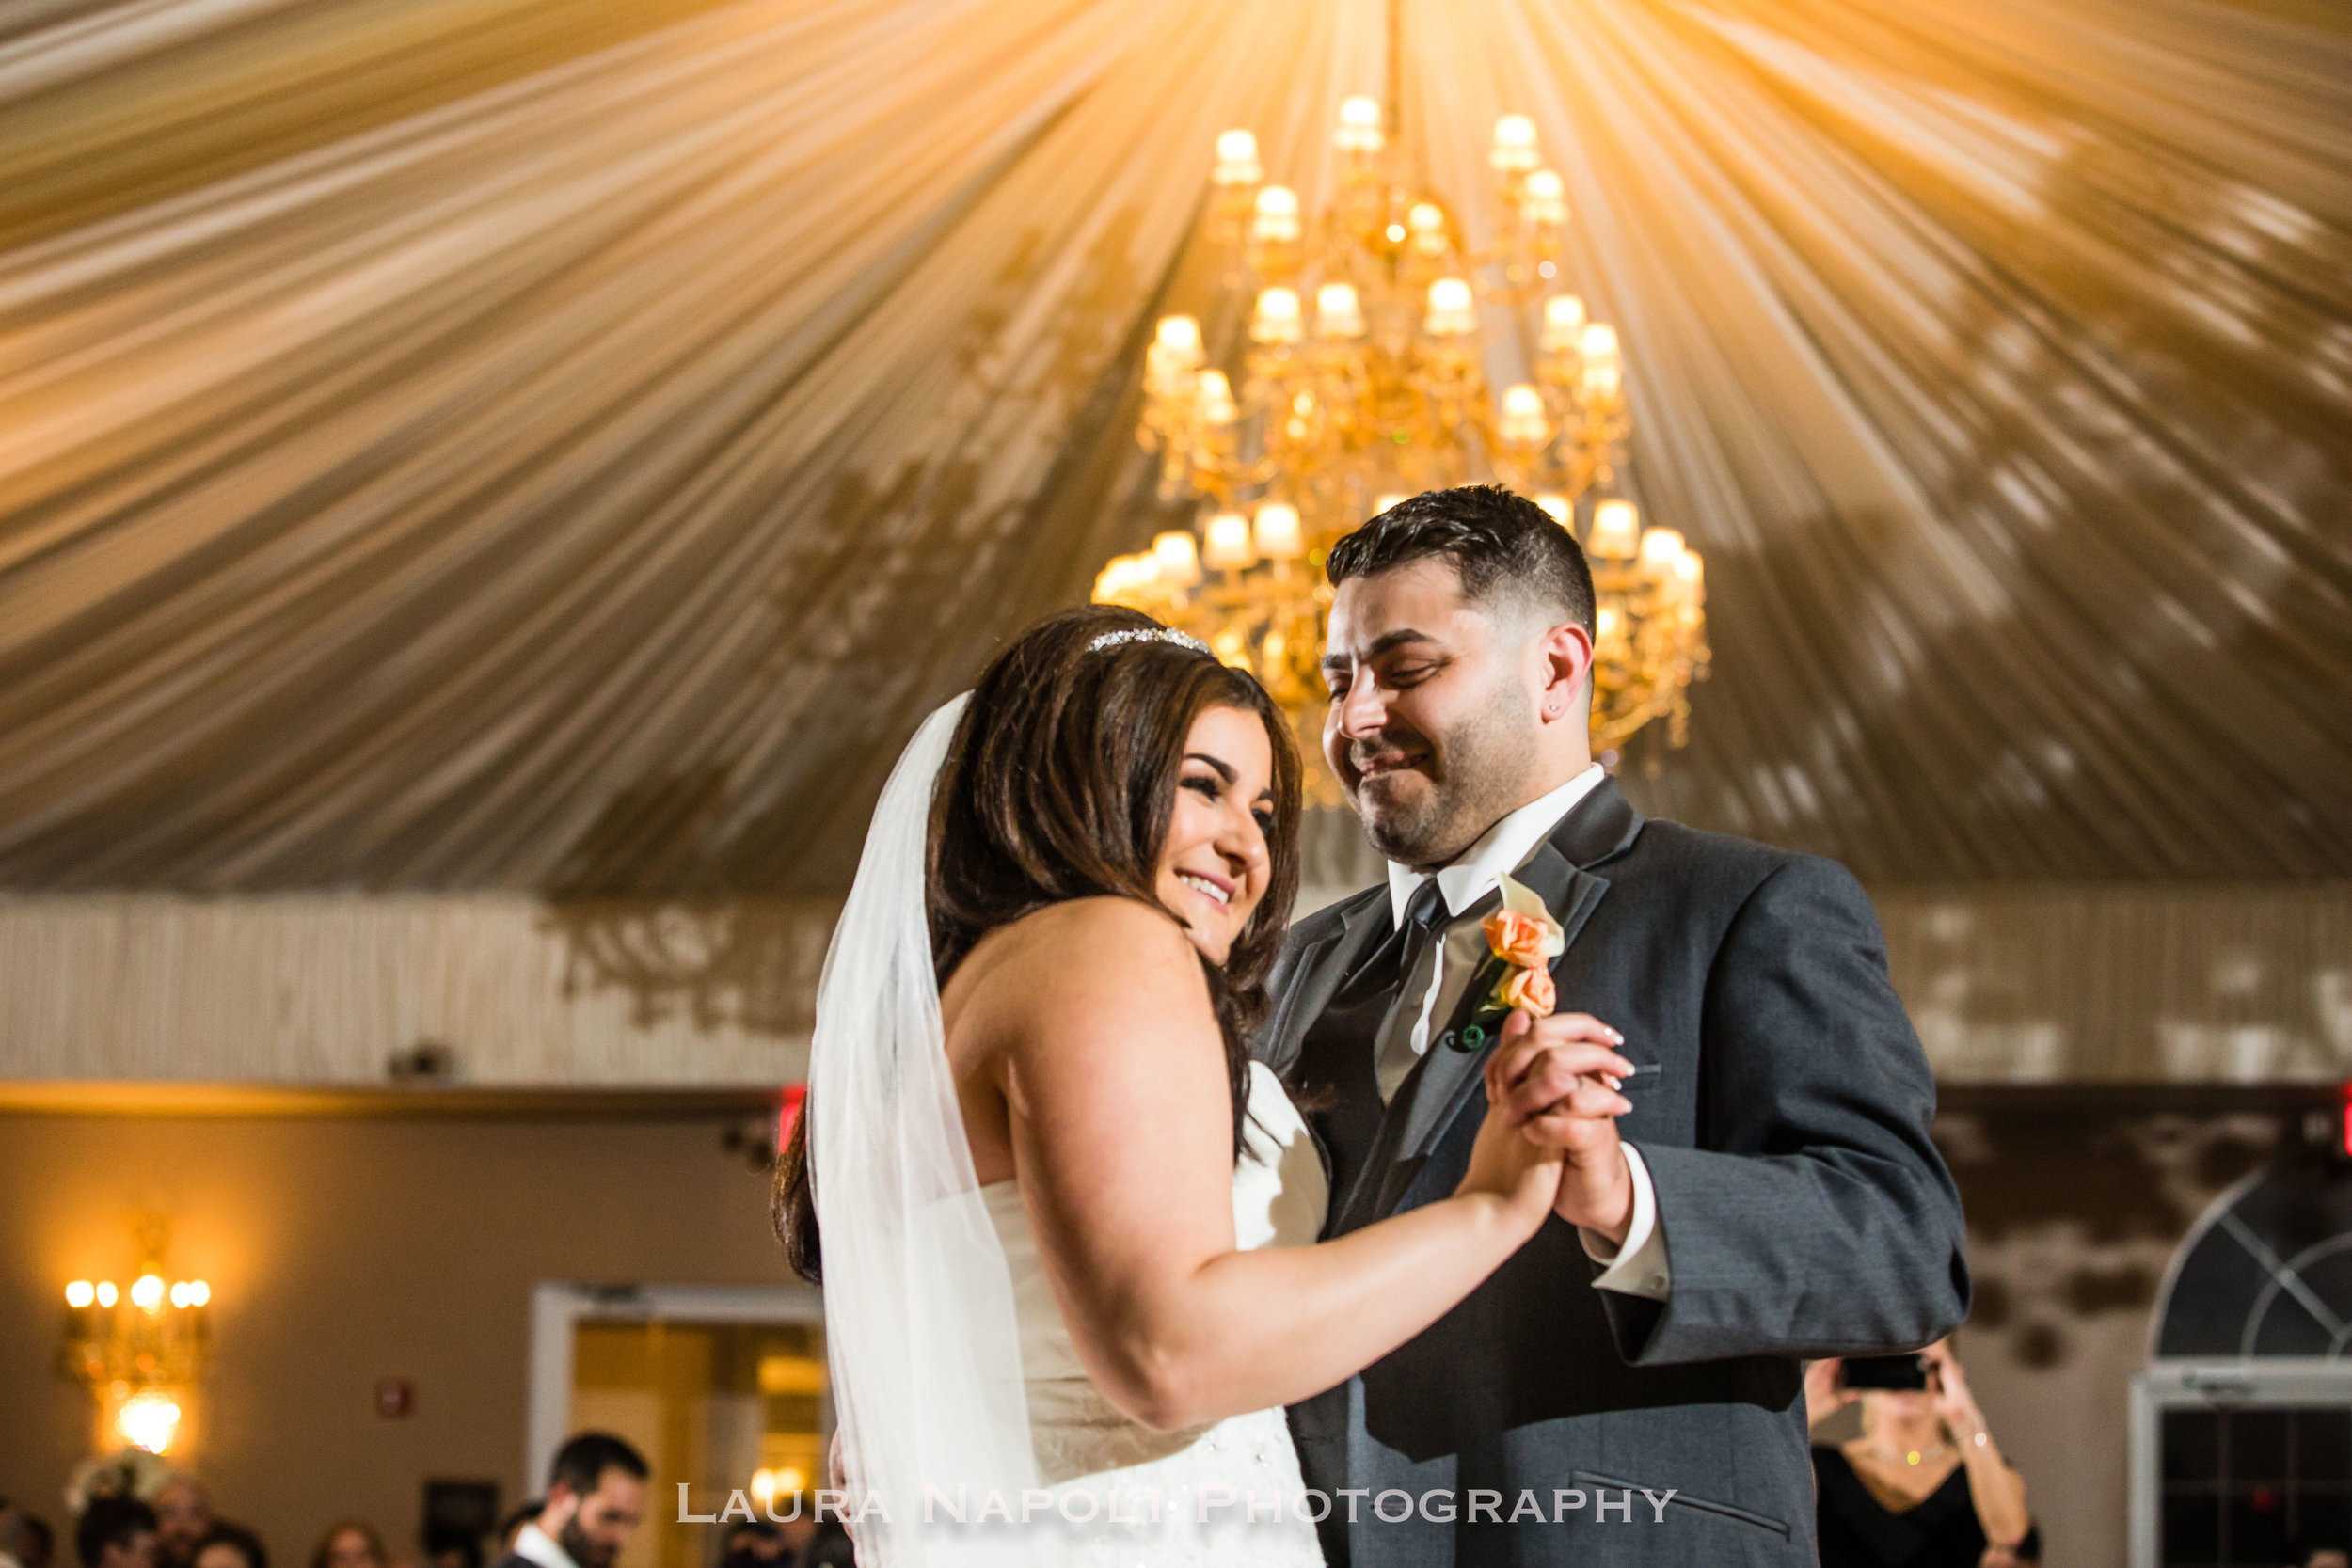 crowneplazacherryhillnjweddingphotographer-29.jpg